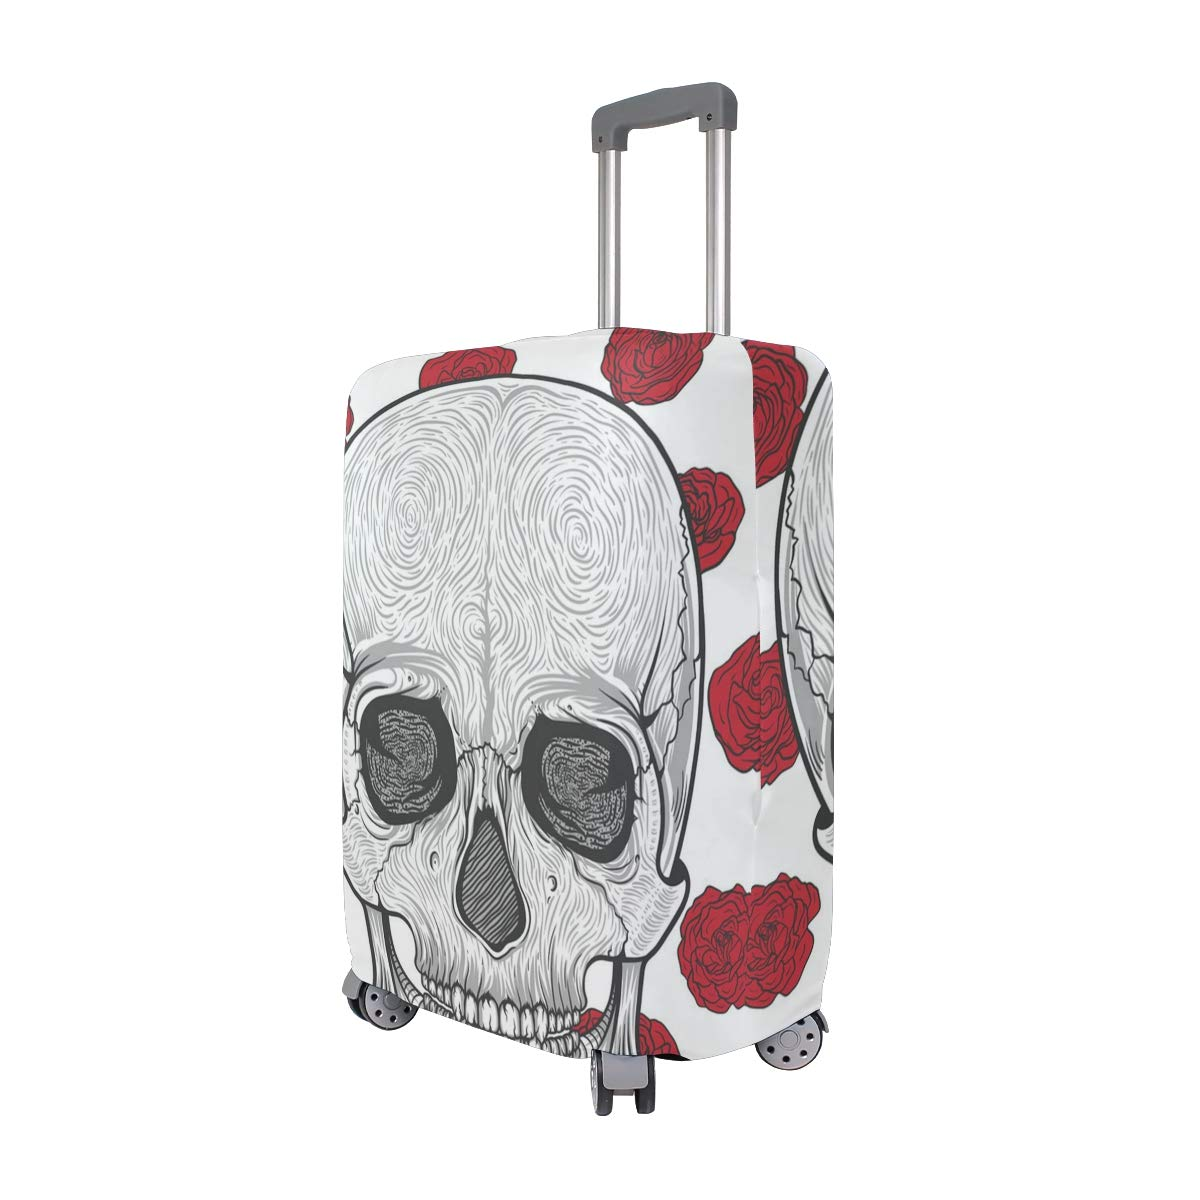 A Skull Red Rose Traveler Lightweight Rotating Luggage Protector Case Can Carry With You Can Expand Travel Bag Trolley Rolling Luggage Protector Case